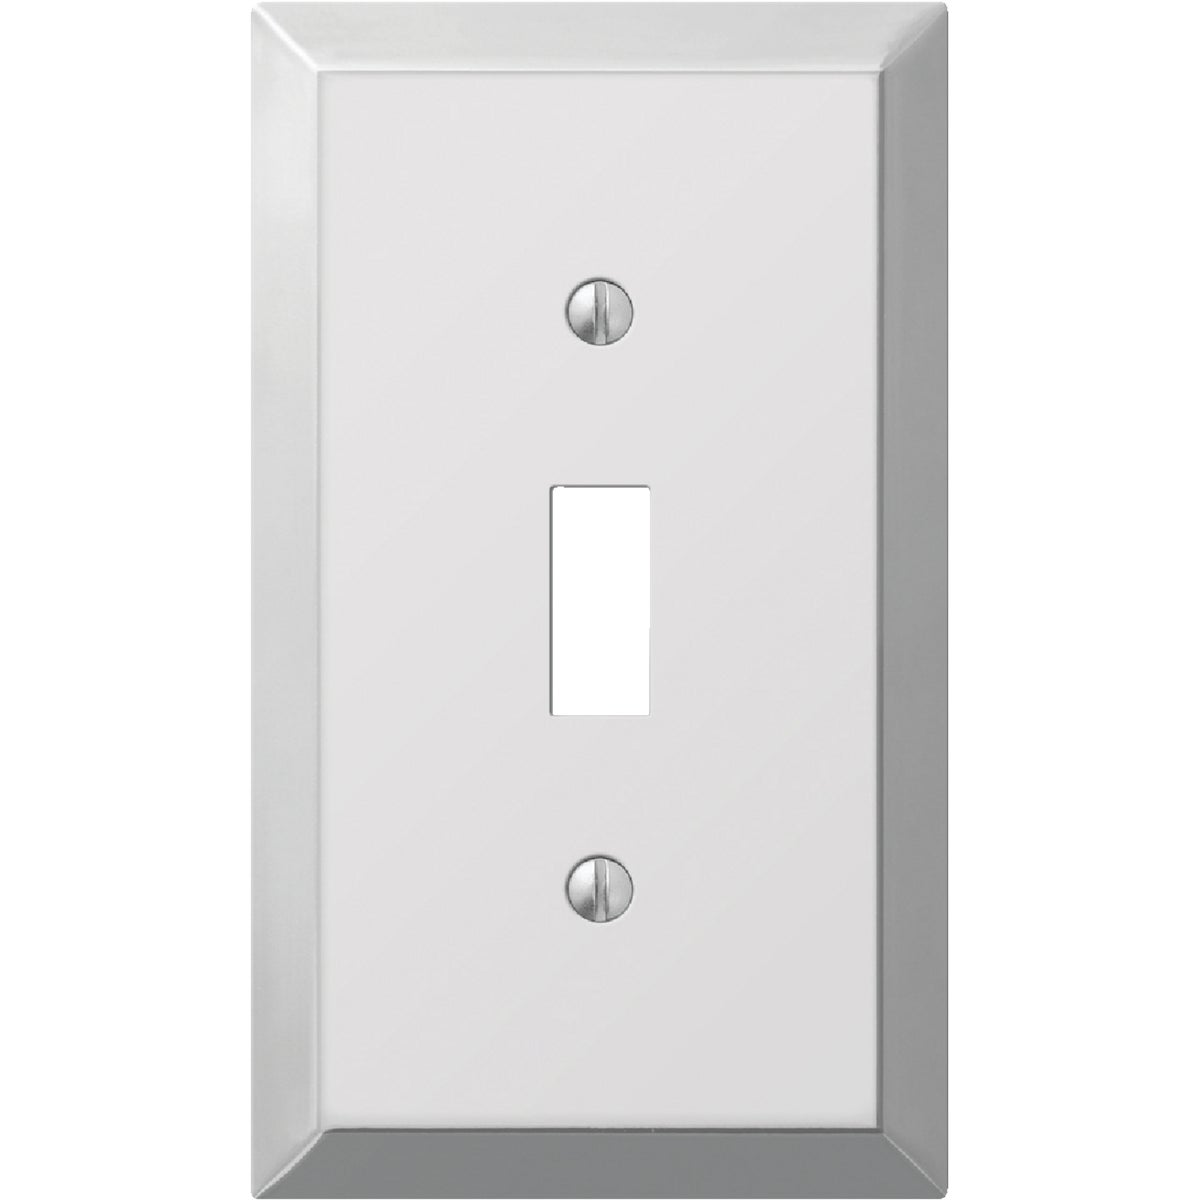 CHR 1-TOGGLE WALL PLATE - 9CS101 by Jackson Deerfield Mf